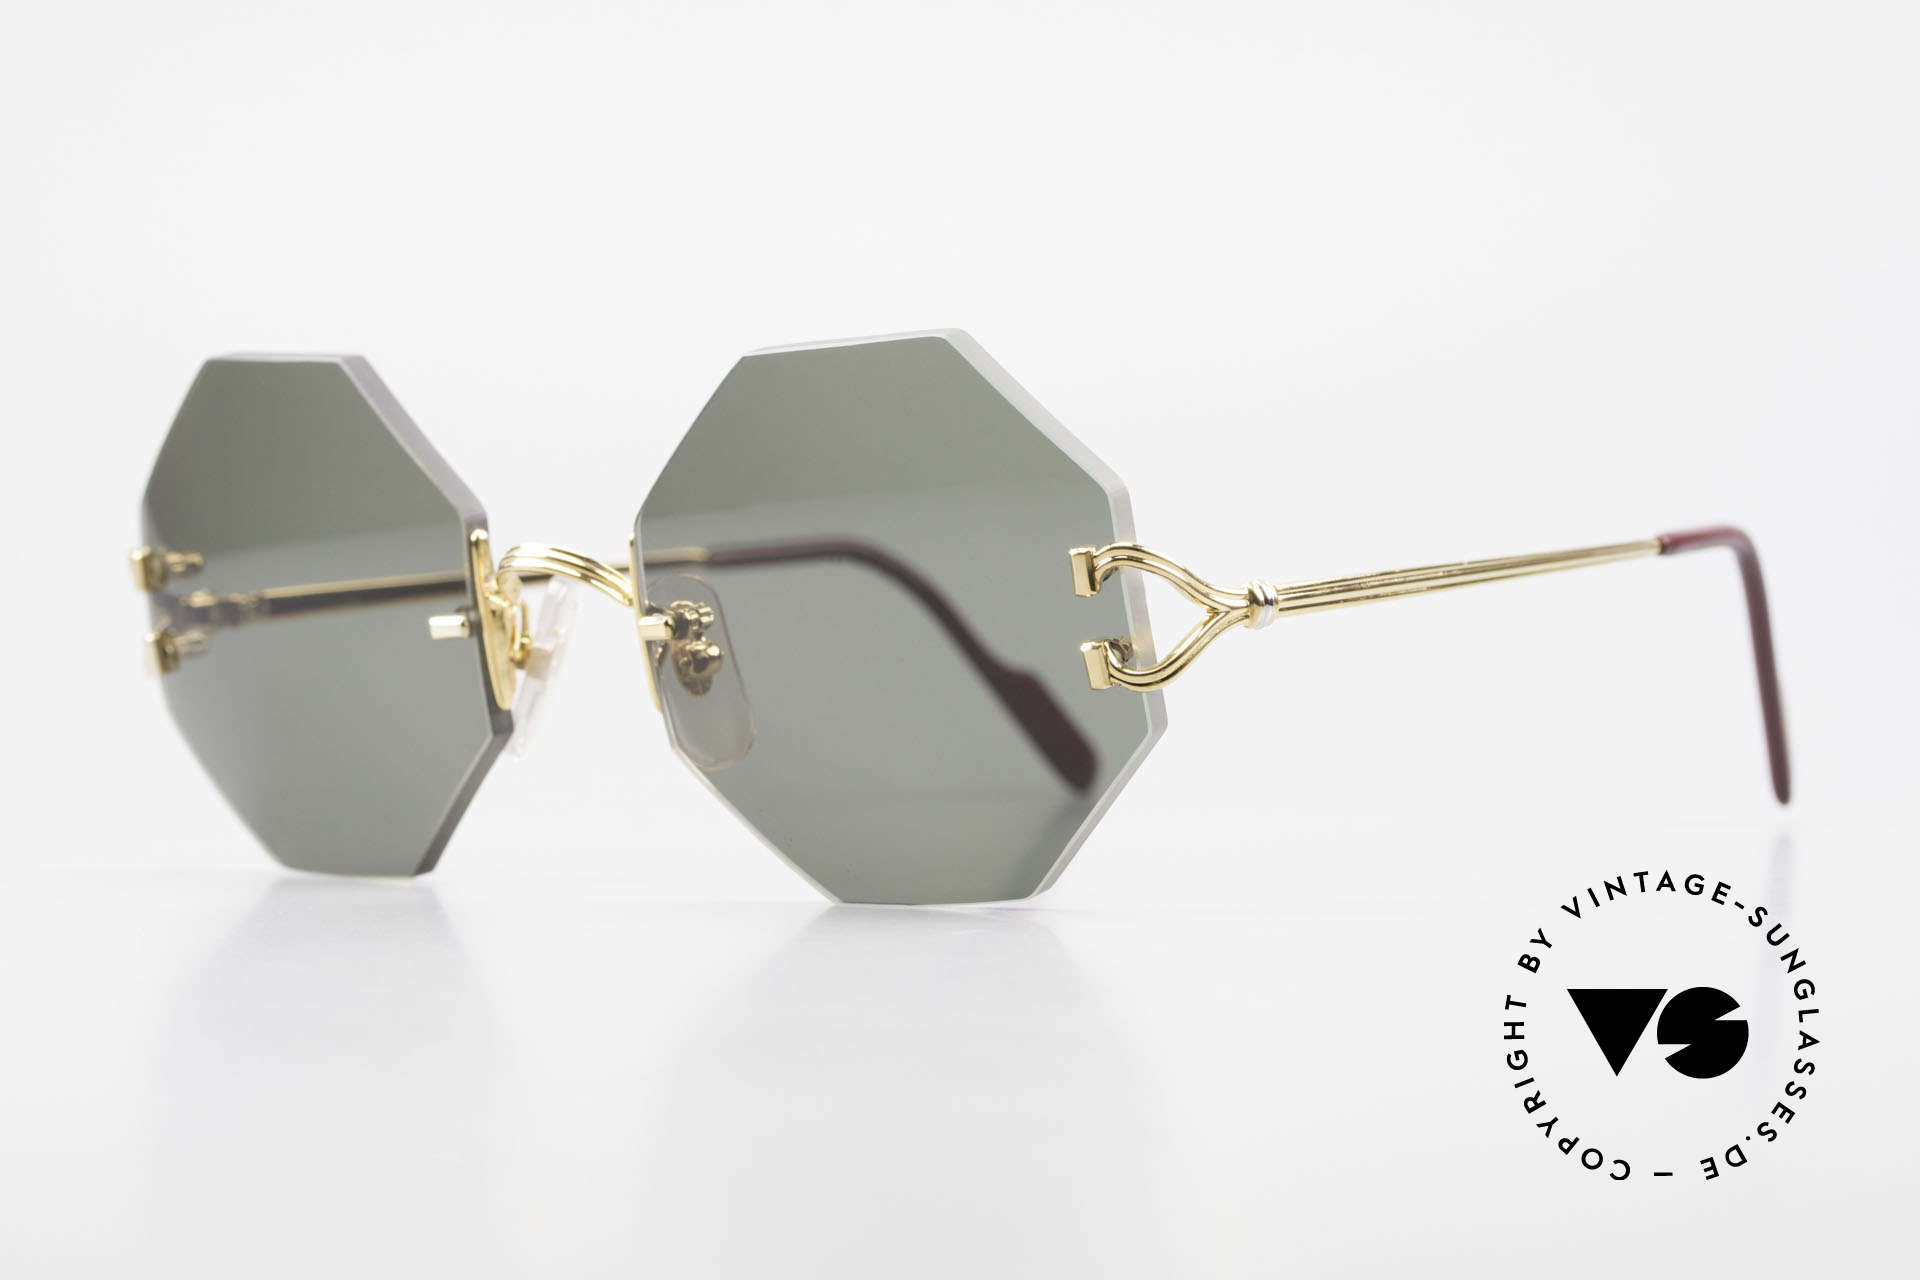 Cartier Rimless Octag Rimless Octagonal Sunglasses, customized by our optician; MEDIUM size (133mm)!, Made for Men and Women